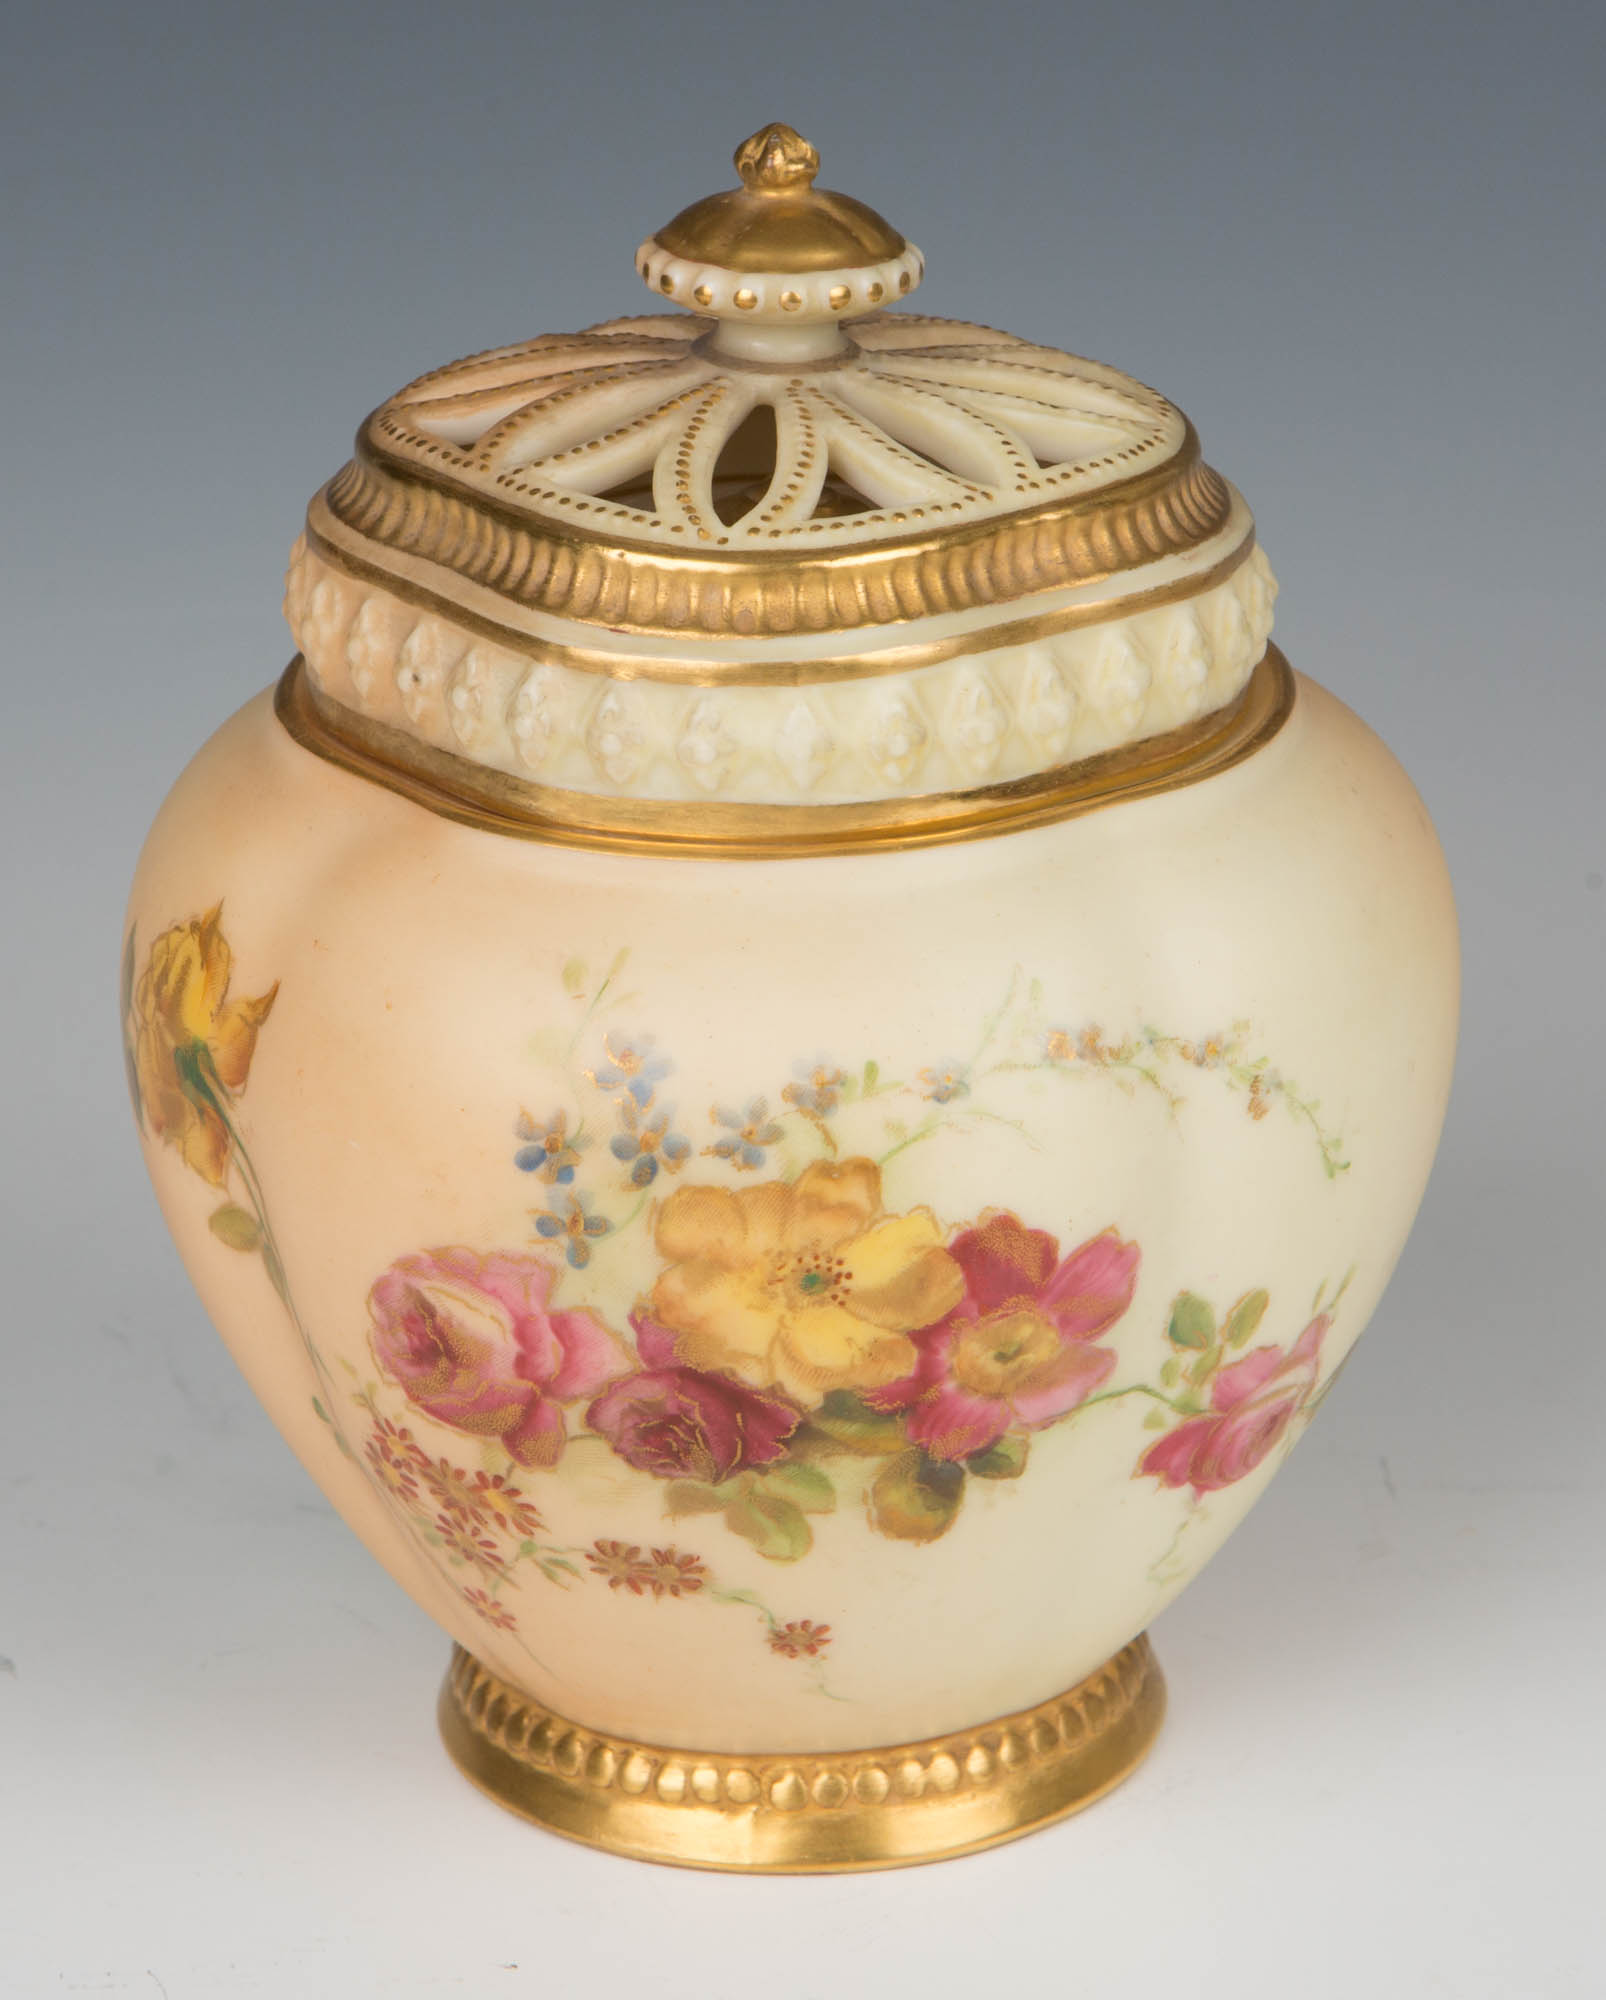 A 19th Century Royal Worcester blush-ivory-ground pot pourri vase, cover and liner.